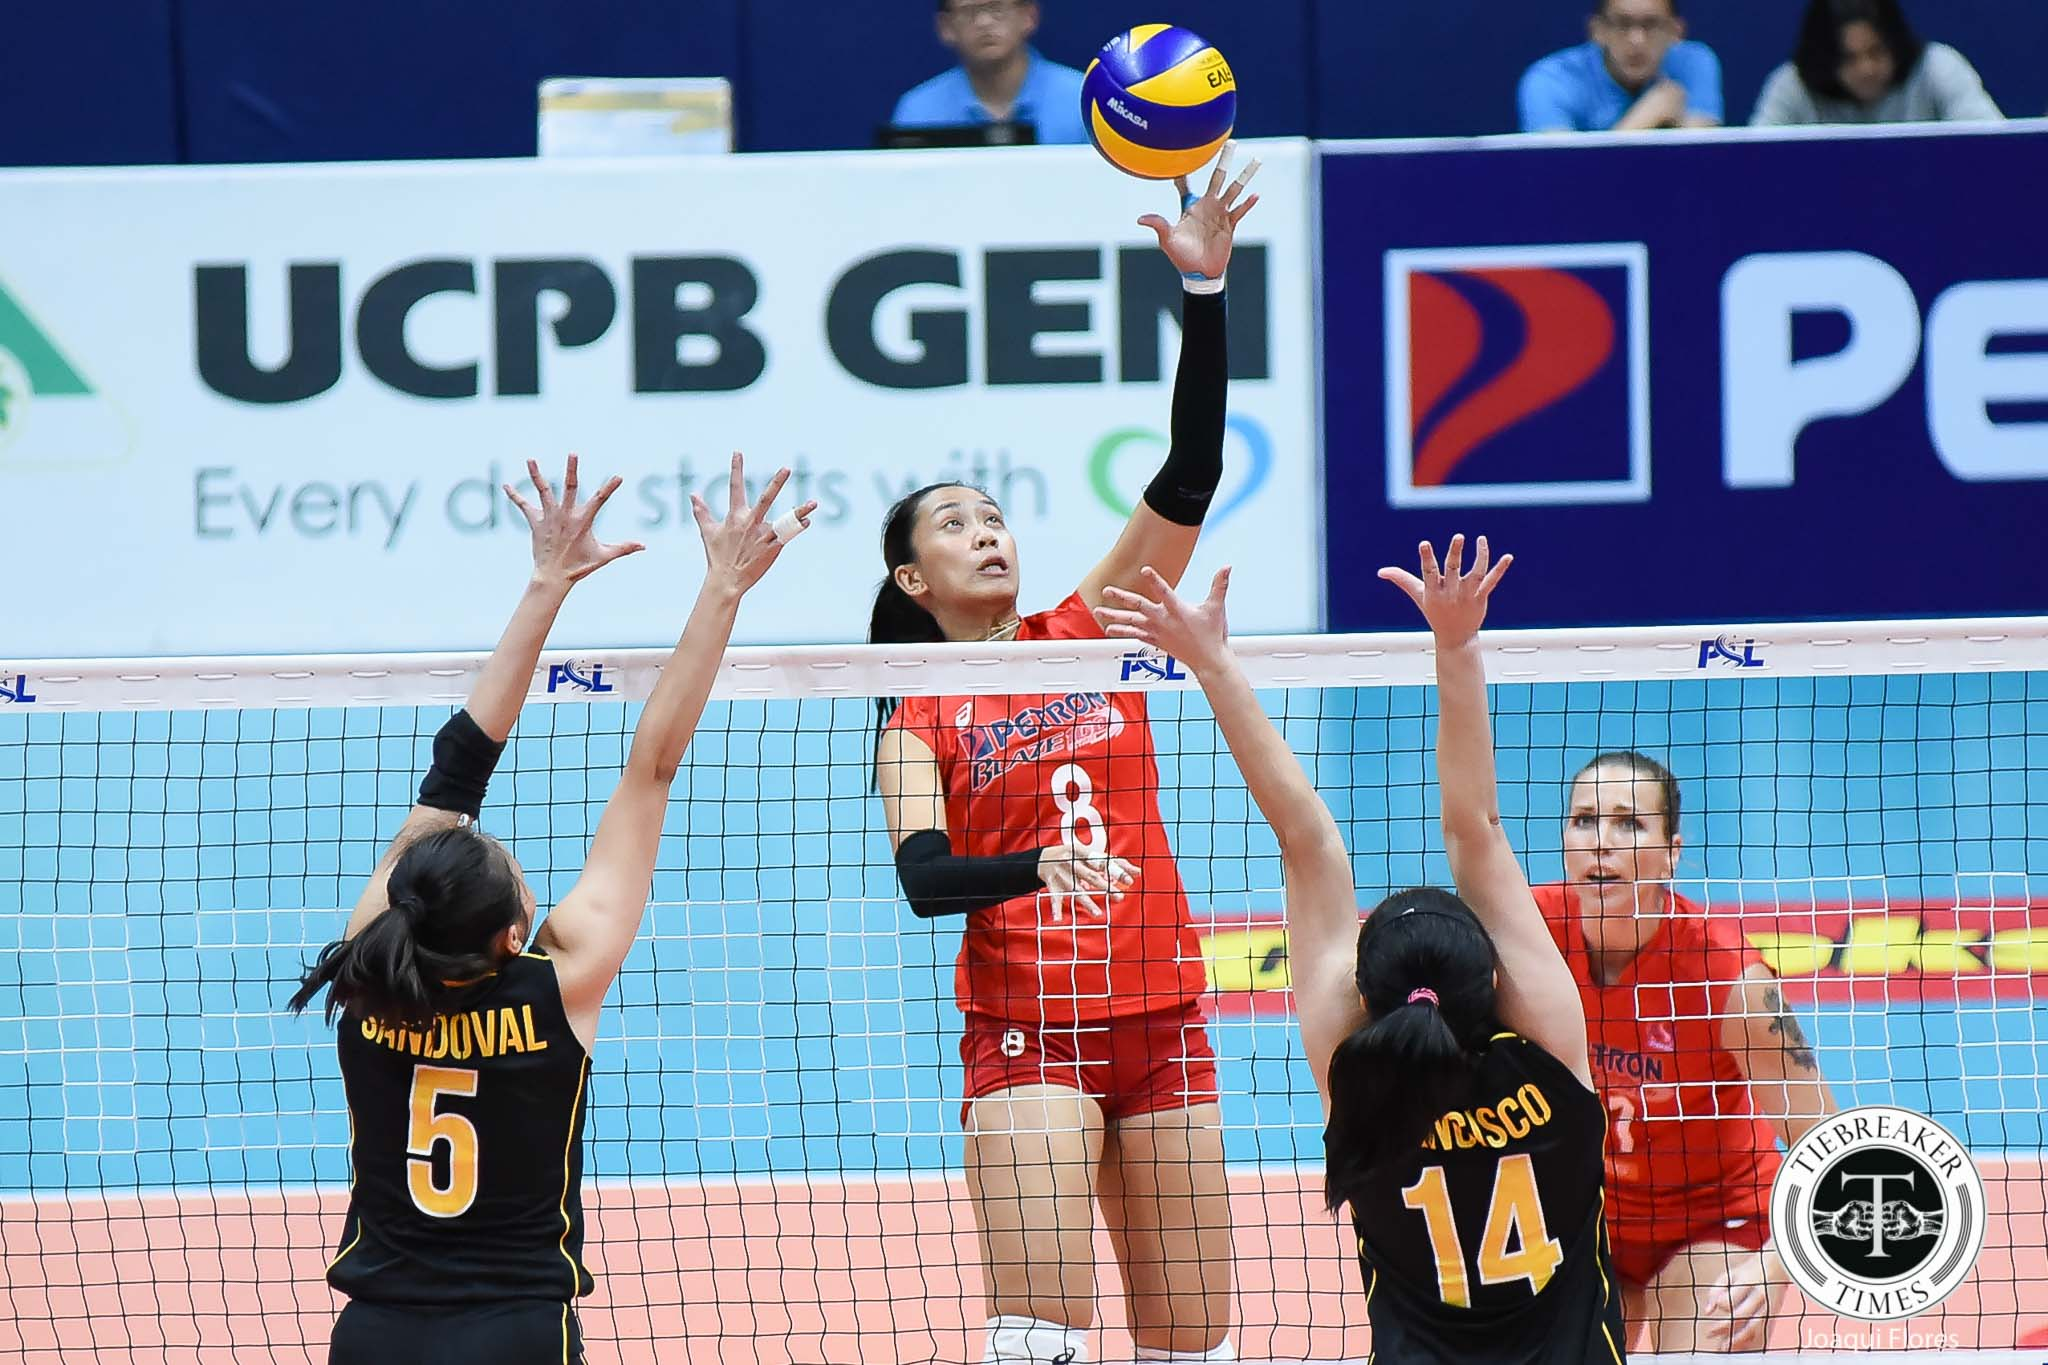 Philippine Sports News - Tiebreaker Times Petron washes off first loss, whips UST News PSL UST Volleyball  Yuri Fukuda Yukie Inamasu Victoria Sports-UST Tigresses UST Women's Volleyball Shaq delos Santos Rhea Dimaculangan Remy Palma Petron Blaze Spikers Paul Jan Dolorias Mary Pacres Chooks-to-Go Aiza Maizo-Pontillas 2017 PSL Season 2017 PSL Grand Prix